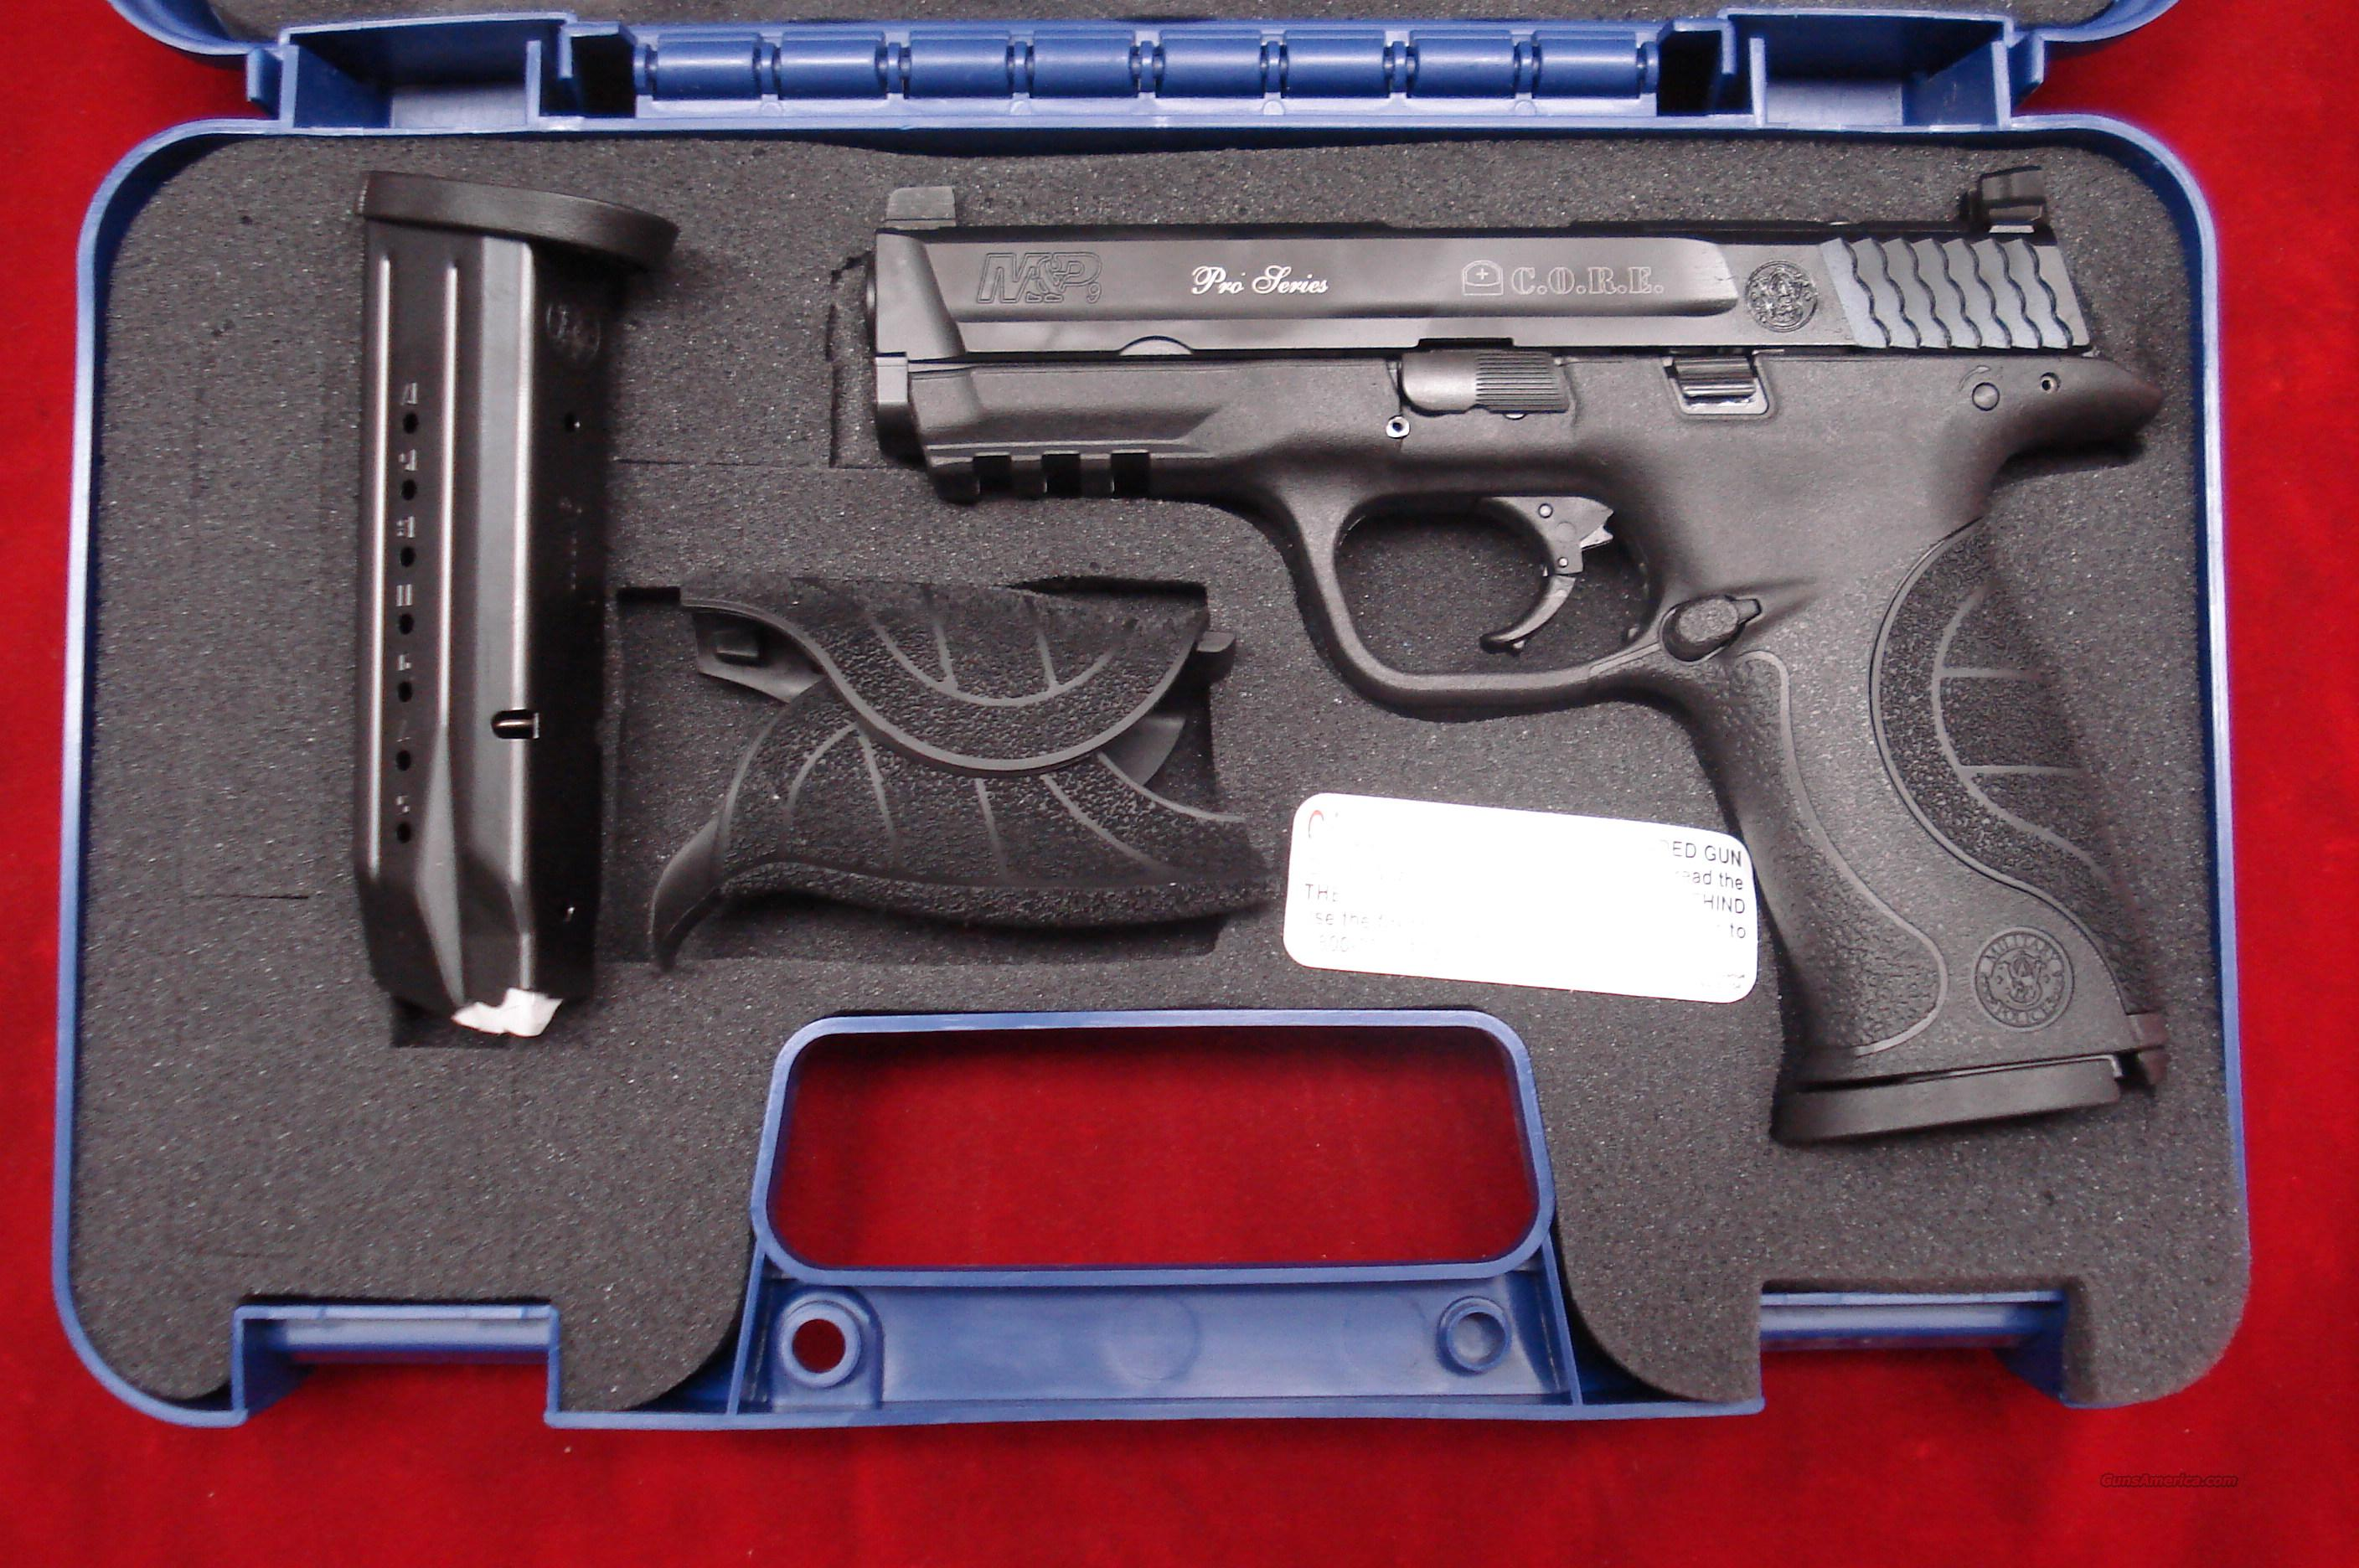 SMITH AND WESSON M&P PRO CORE 40 CAL NEW  Guns > Pistols > Smith & Wesson Pistols - Autos > Polymer Frame